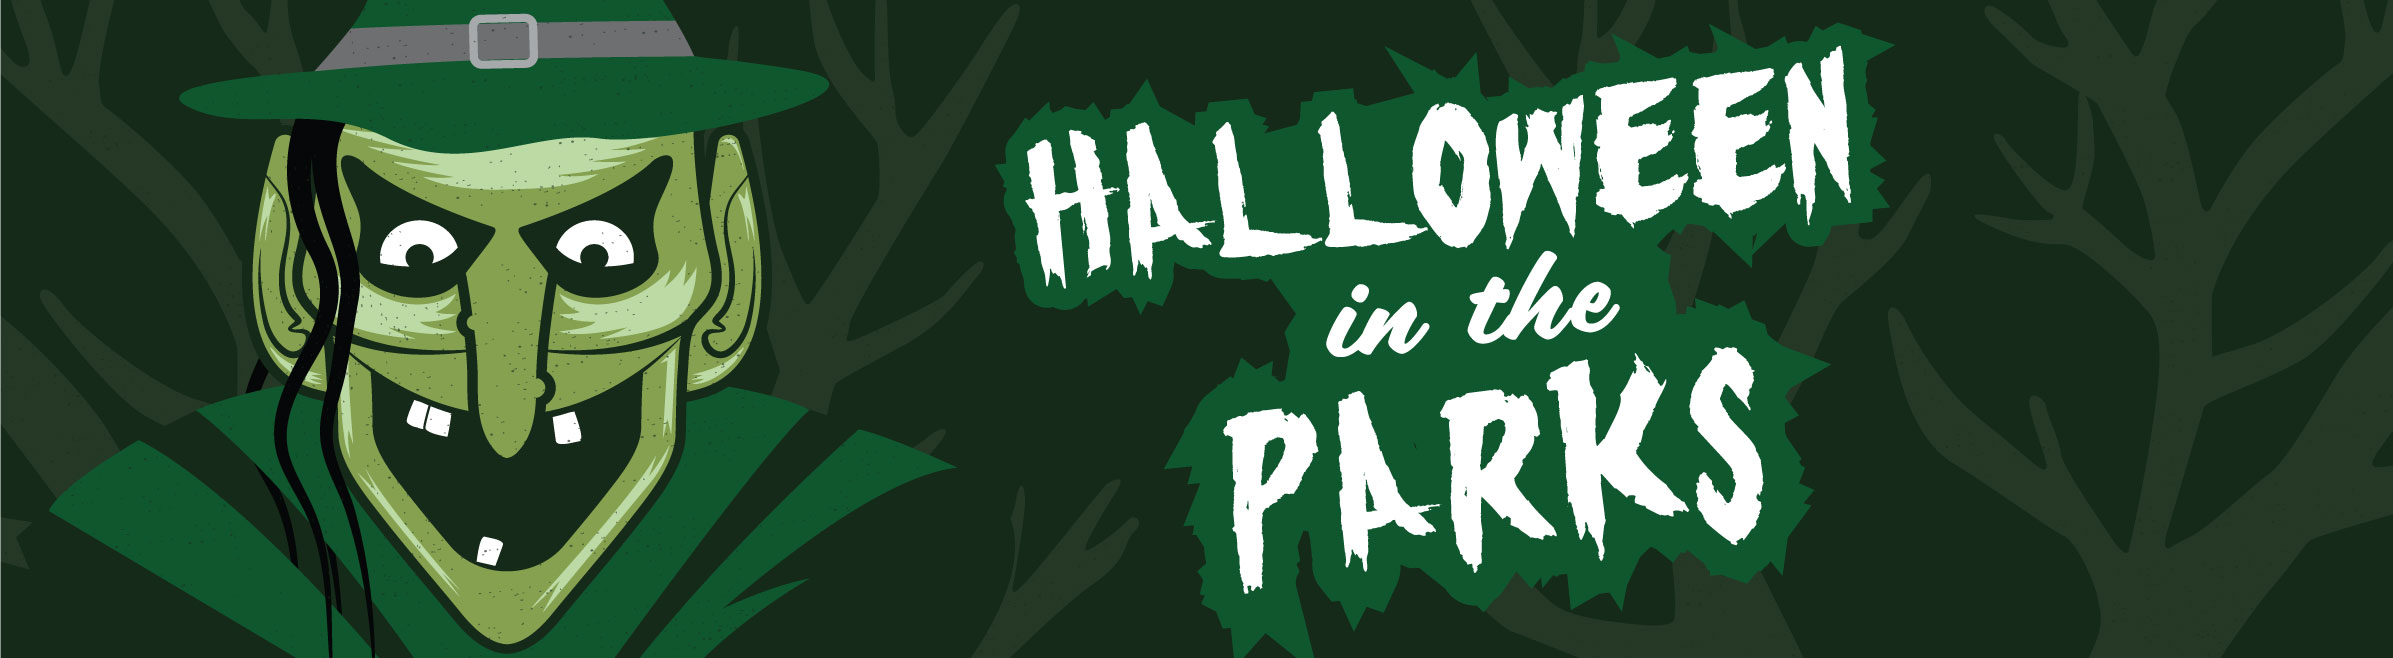 Halloween in the Parks